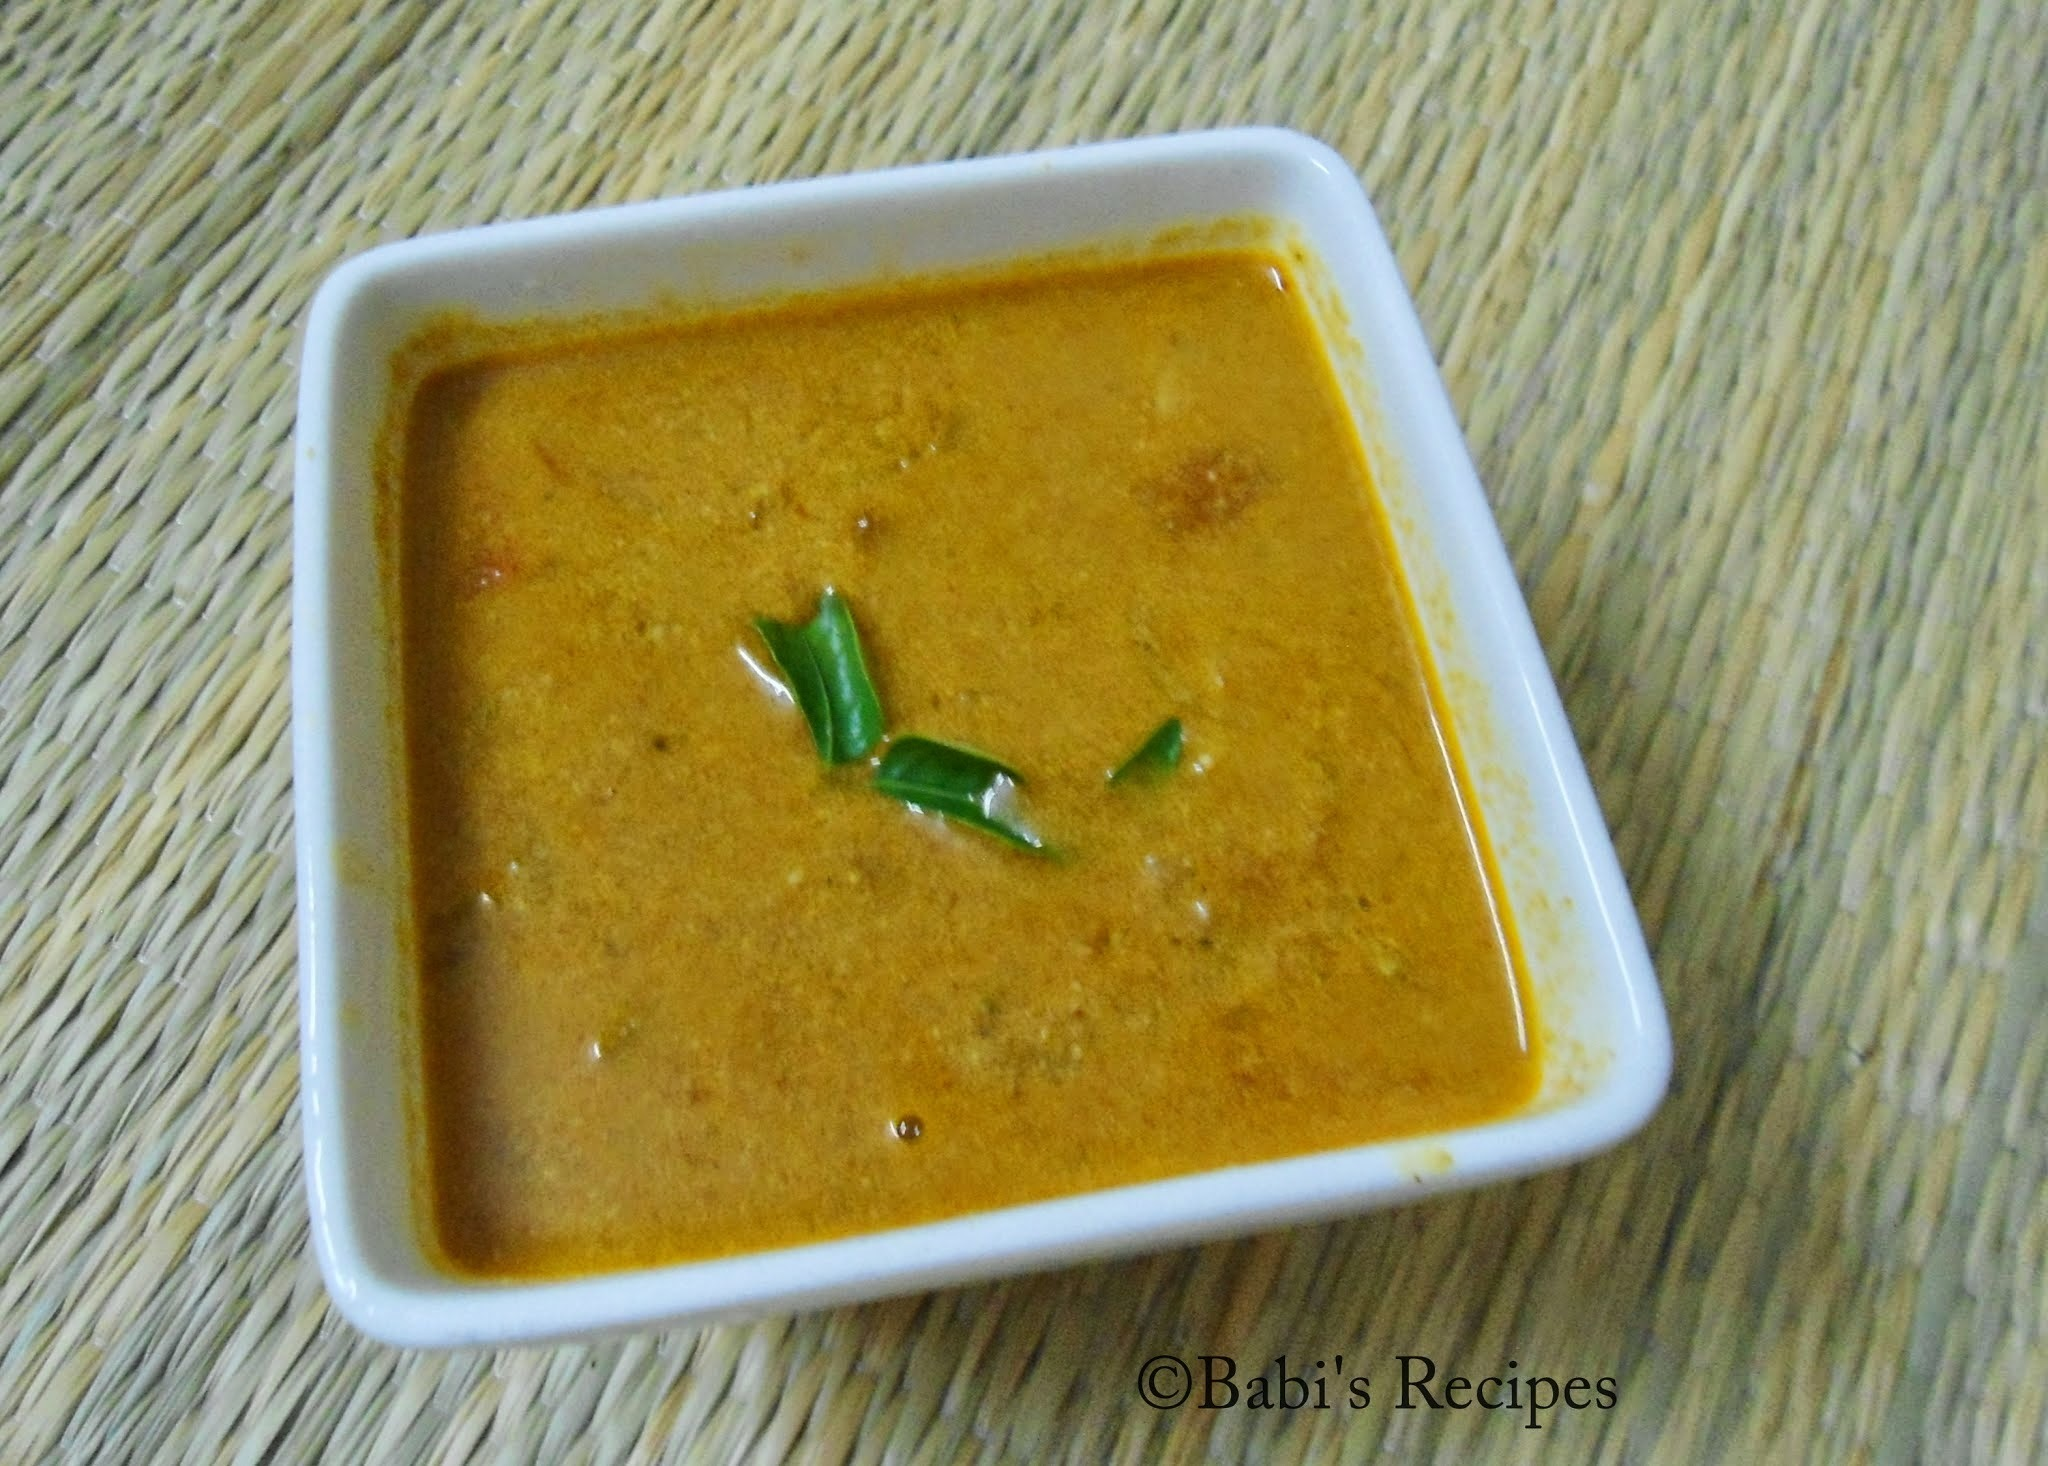 Plain salna | Tomato salna | Side dish for Parota,Idiyappam